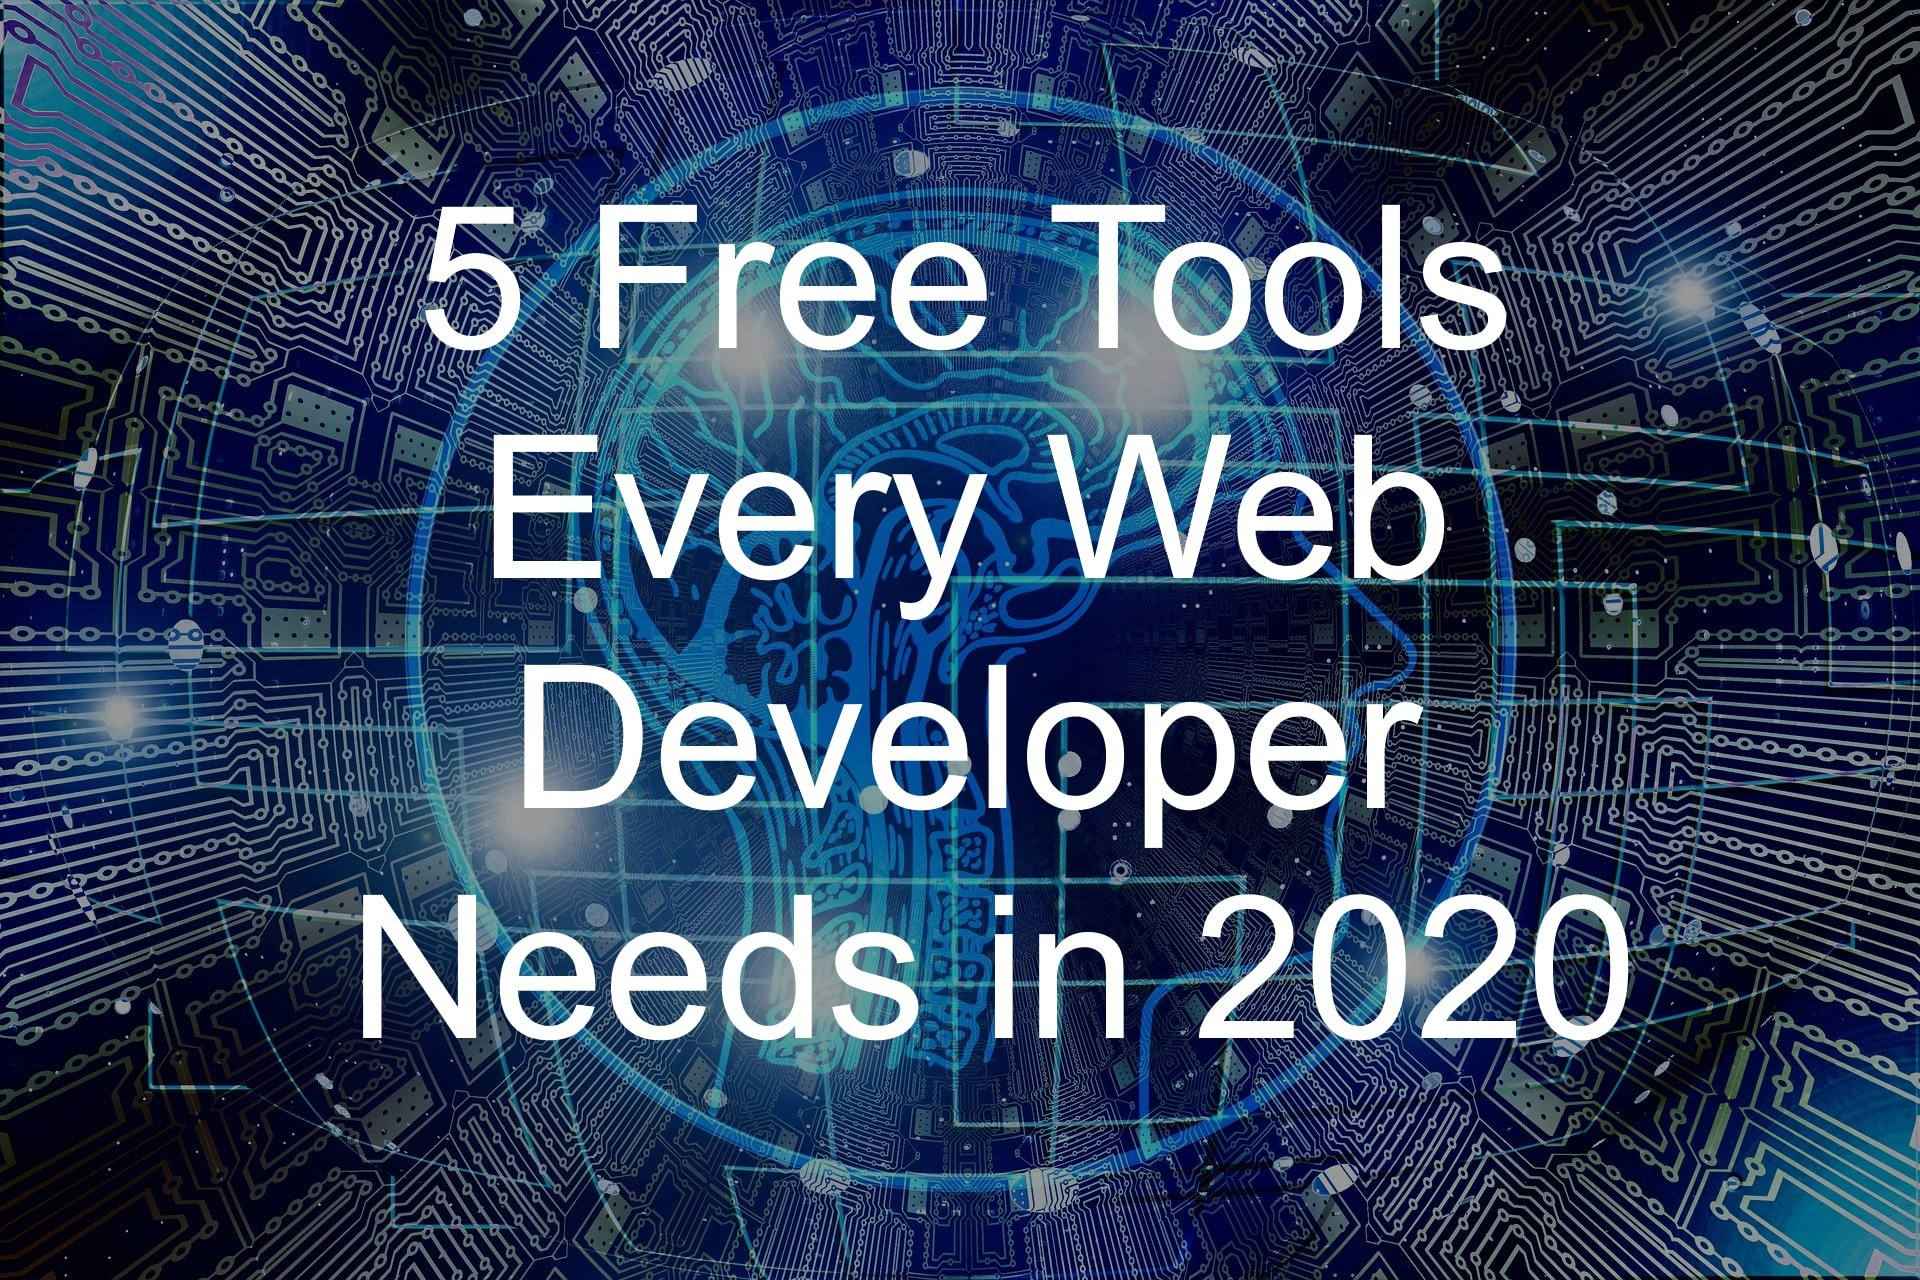 free tools every web developer needs 2020 featured